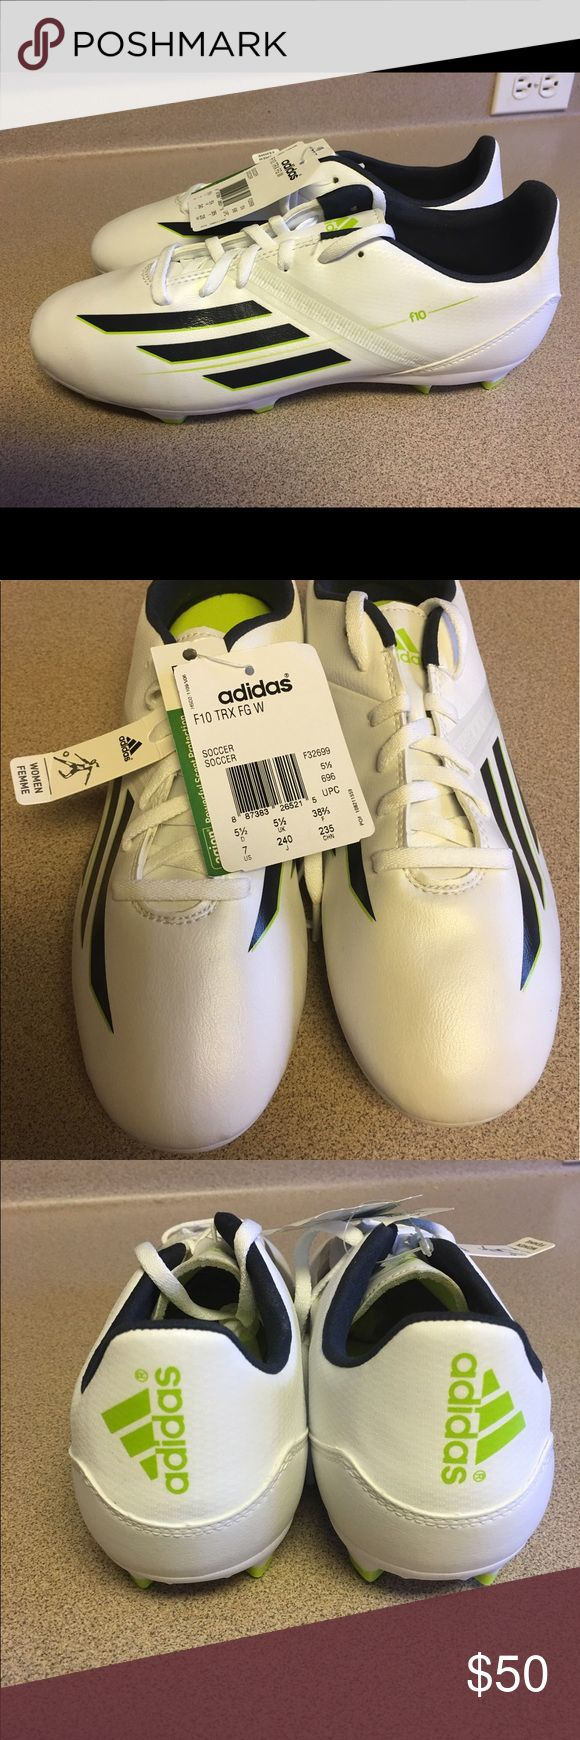 NEW NET WOMENS ADIDAS F10 TRX FG W SOCCER Size 7M NEW NET WOMENS ADIDAS F10 TRX FG W SOCCER SHOES Size 7 M Adidas Shoes Athletic Shoes